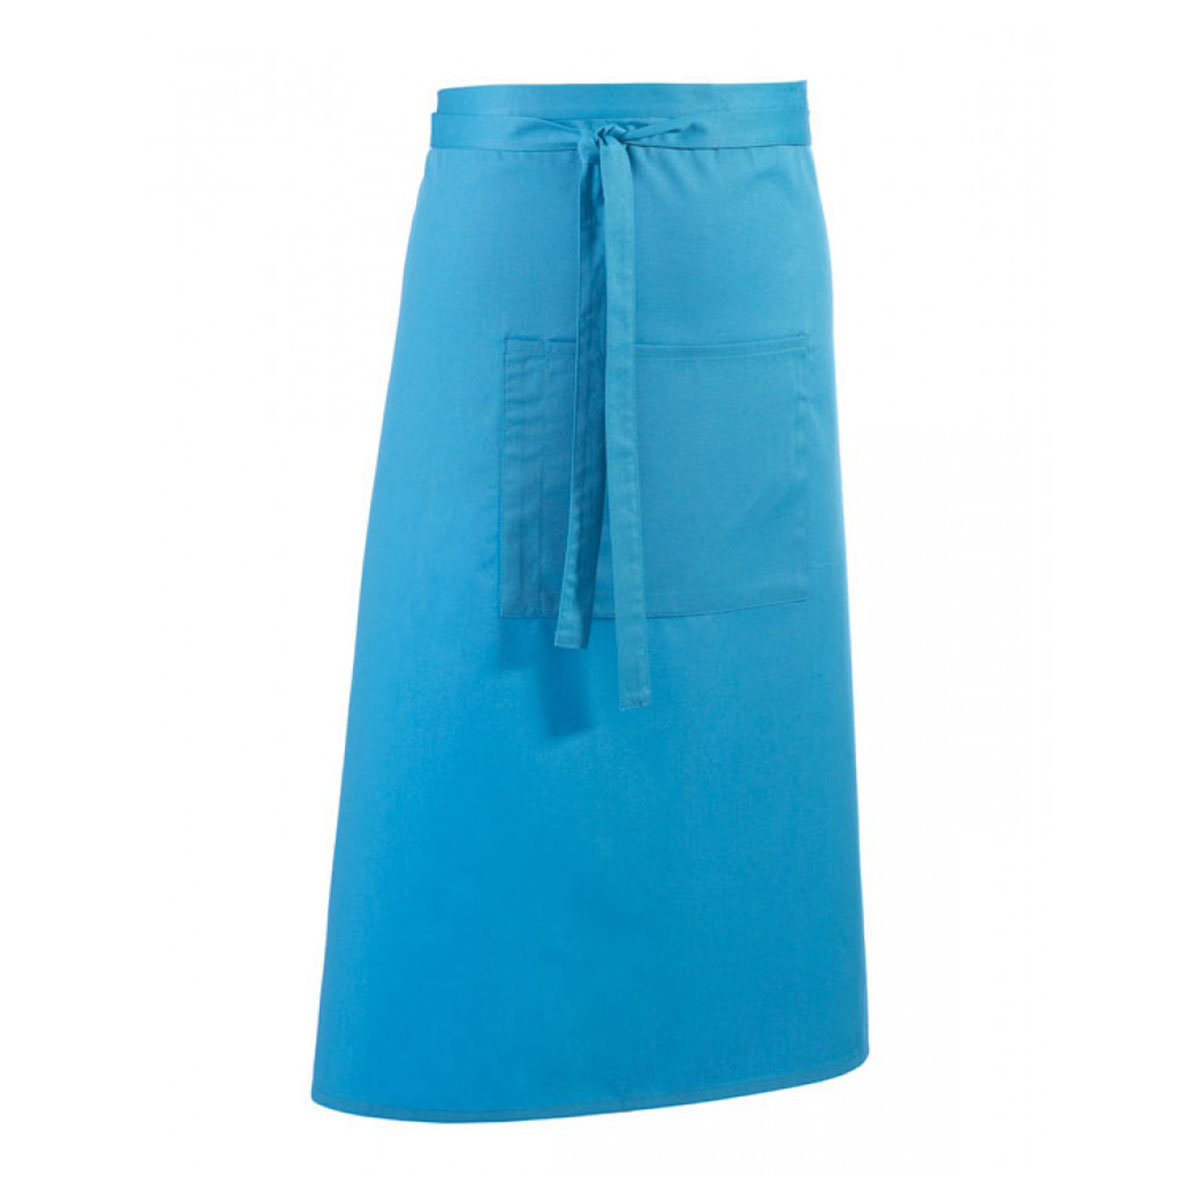 Colours Hospitality Apron - pr158_turquoise